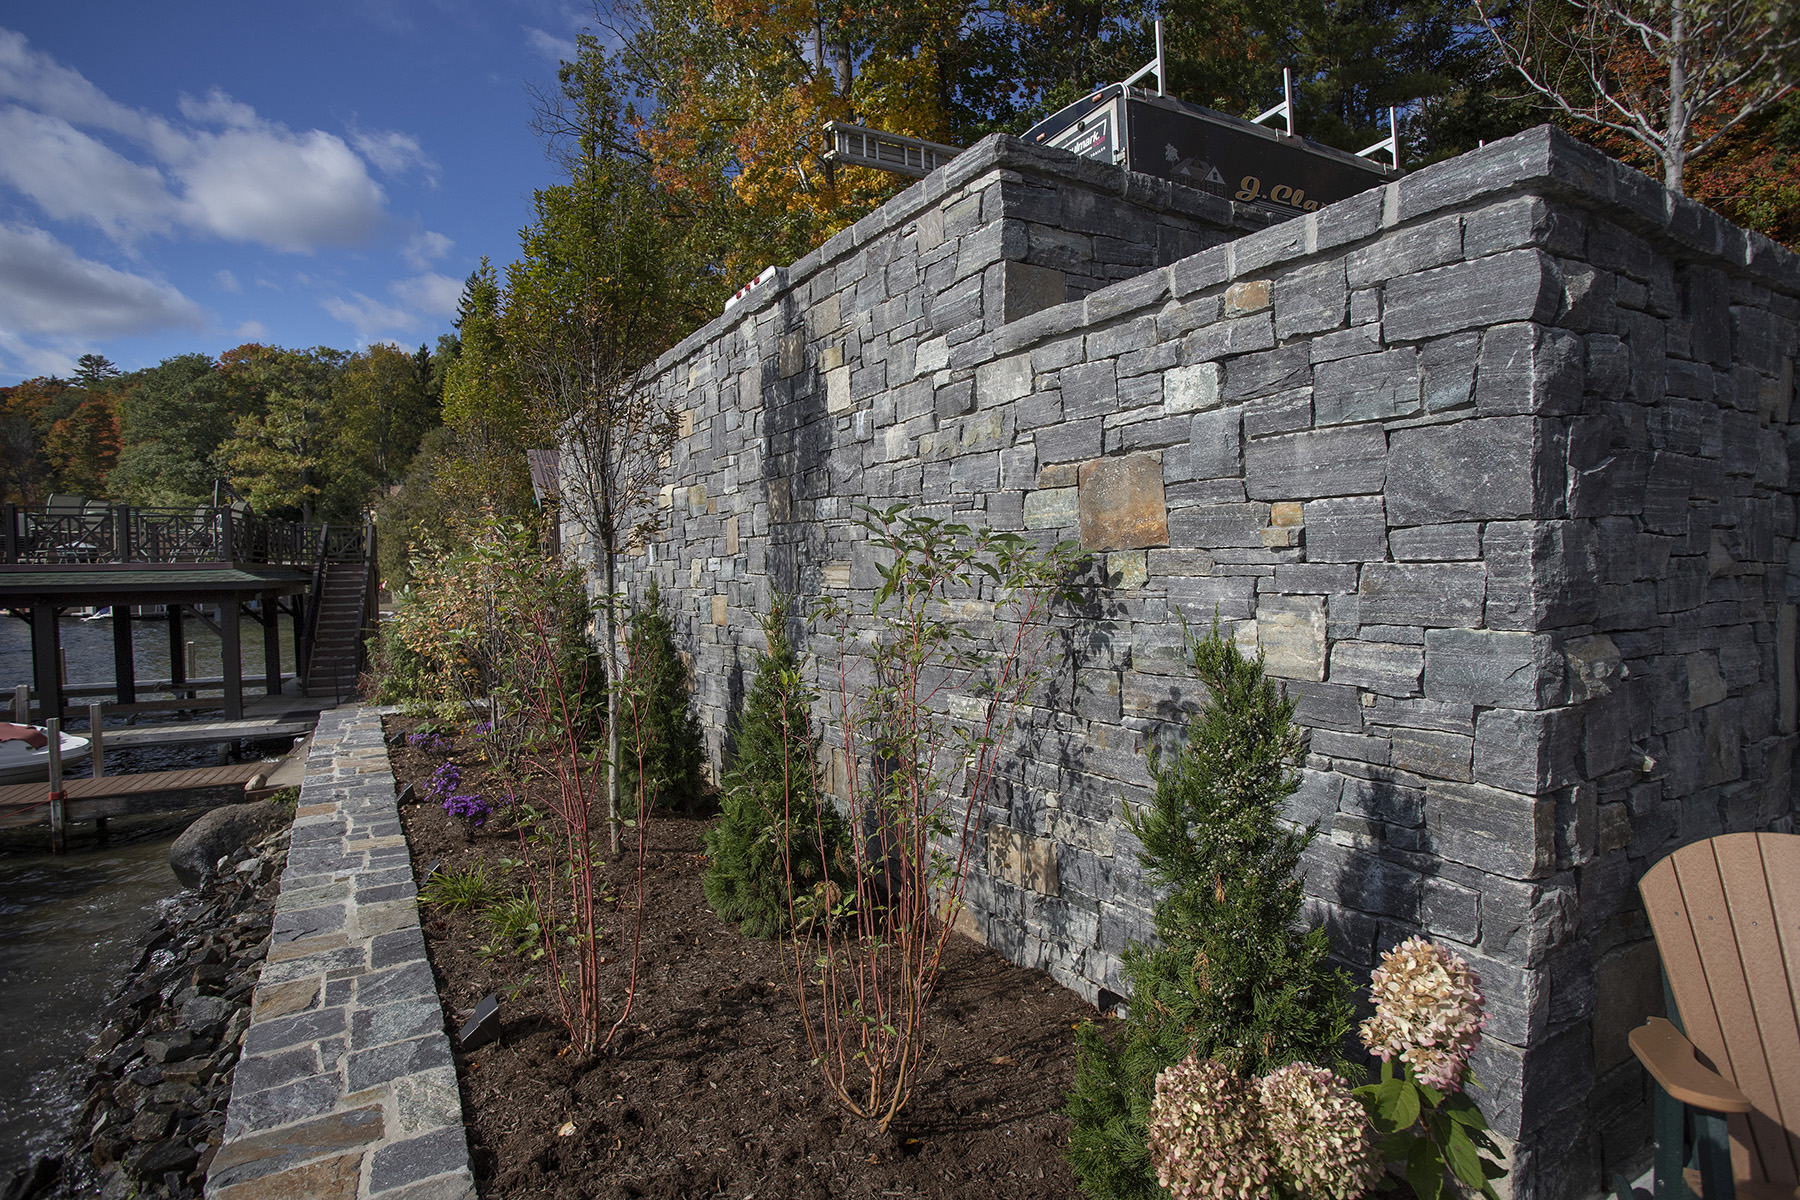 stone wall containing garden